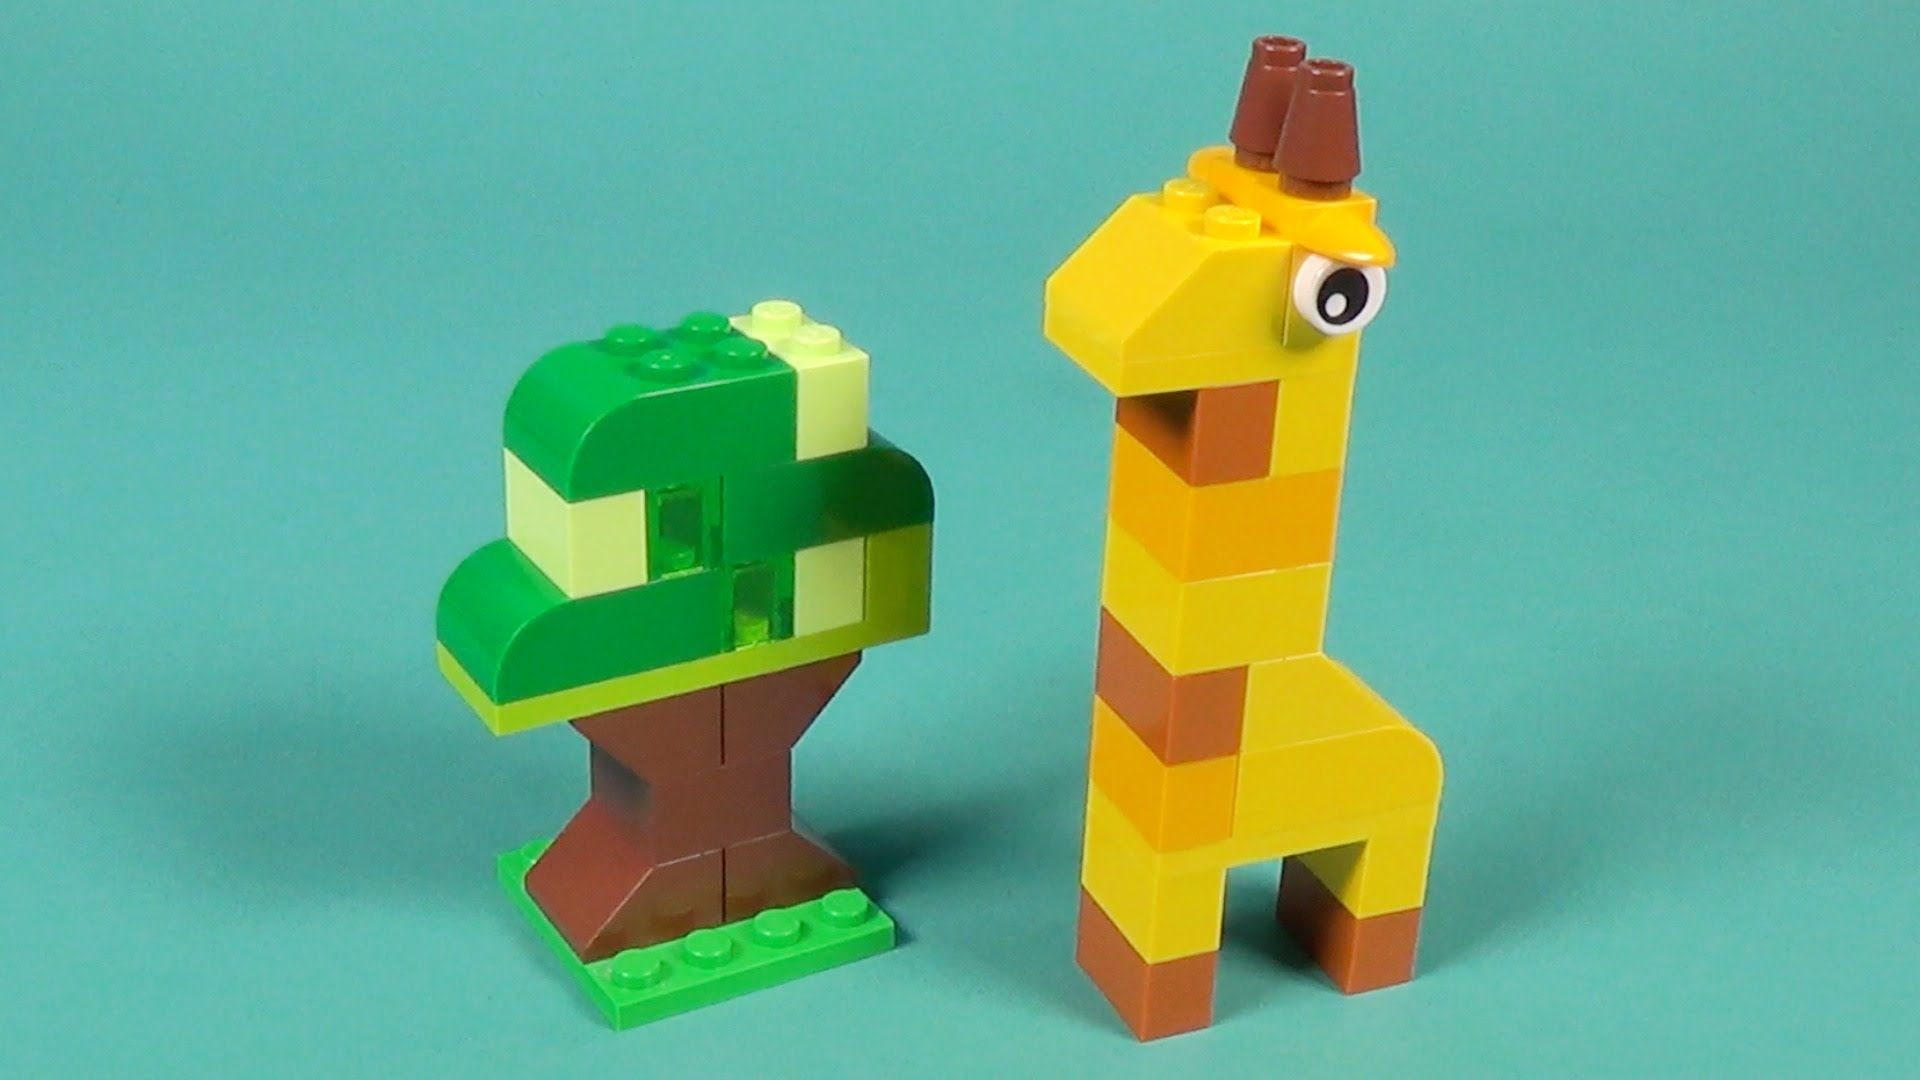 Lego Giraffe And Tree Building Instructions Lego Classic 10695